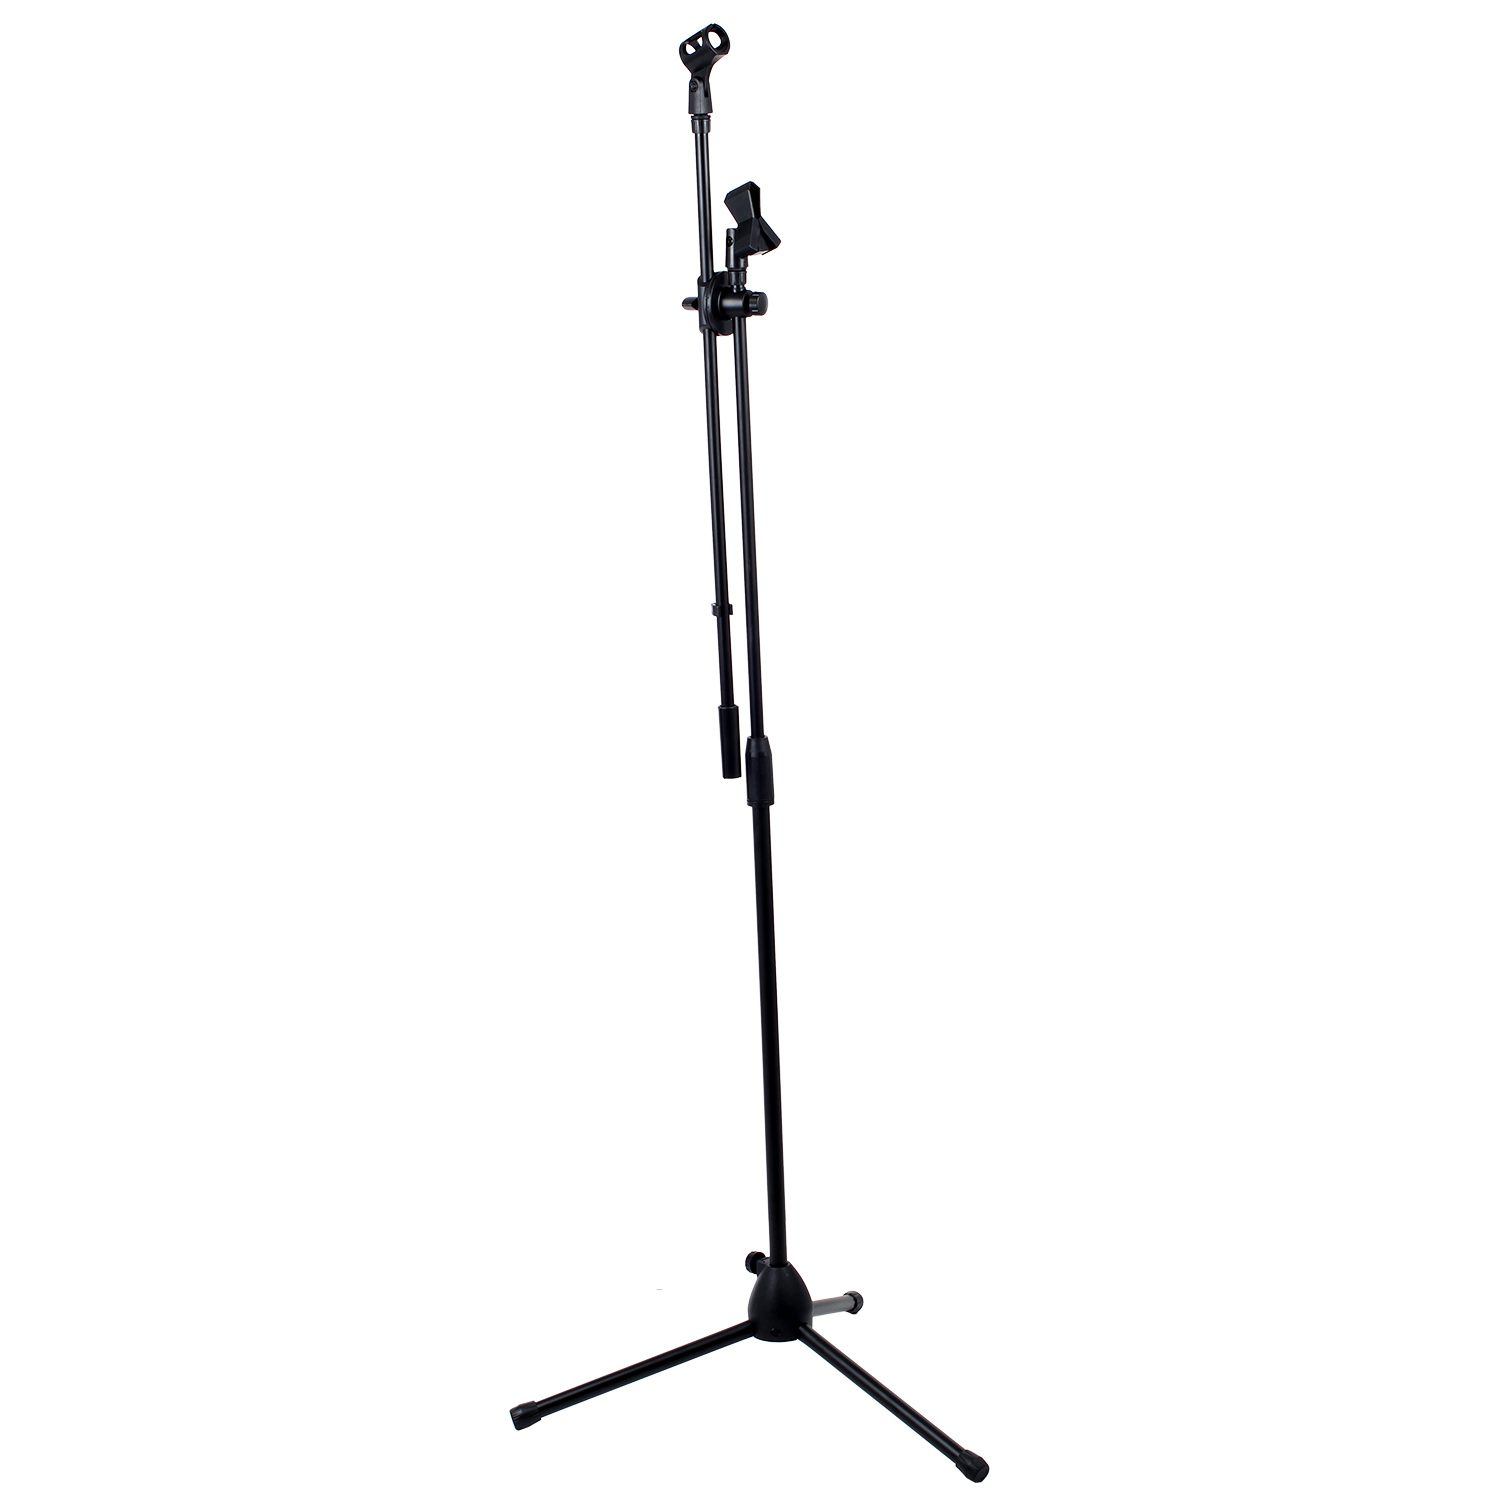 New High Quality Professional Boom Microphone Mic Stand Holder Adjustable & 2 Clips